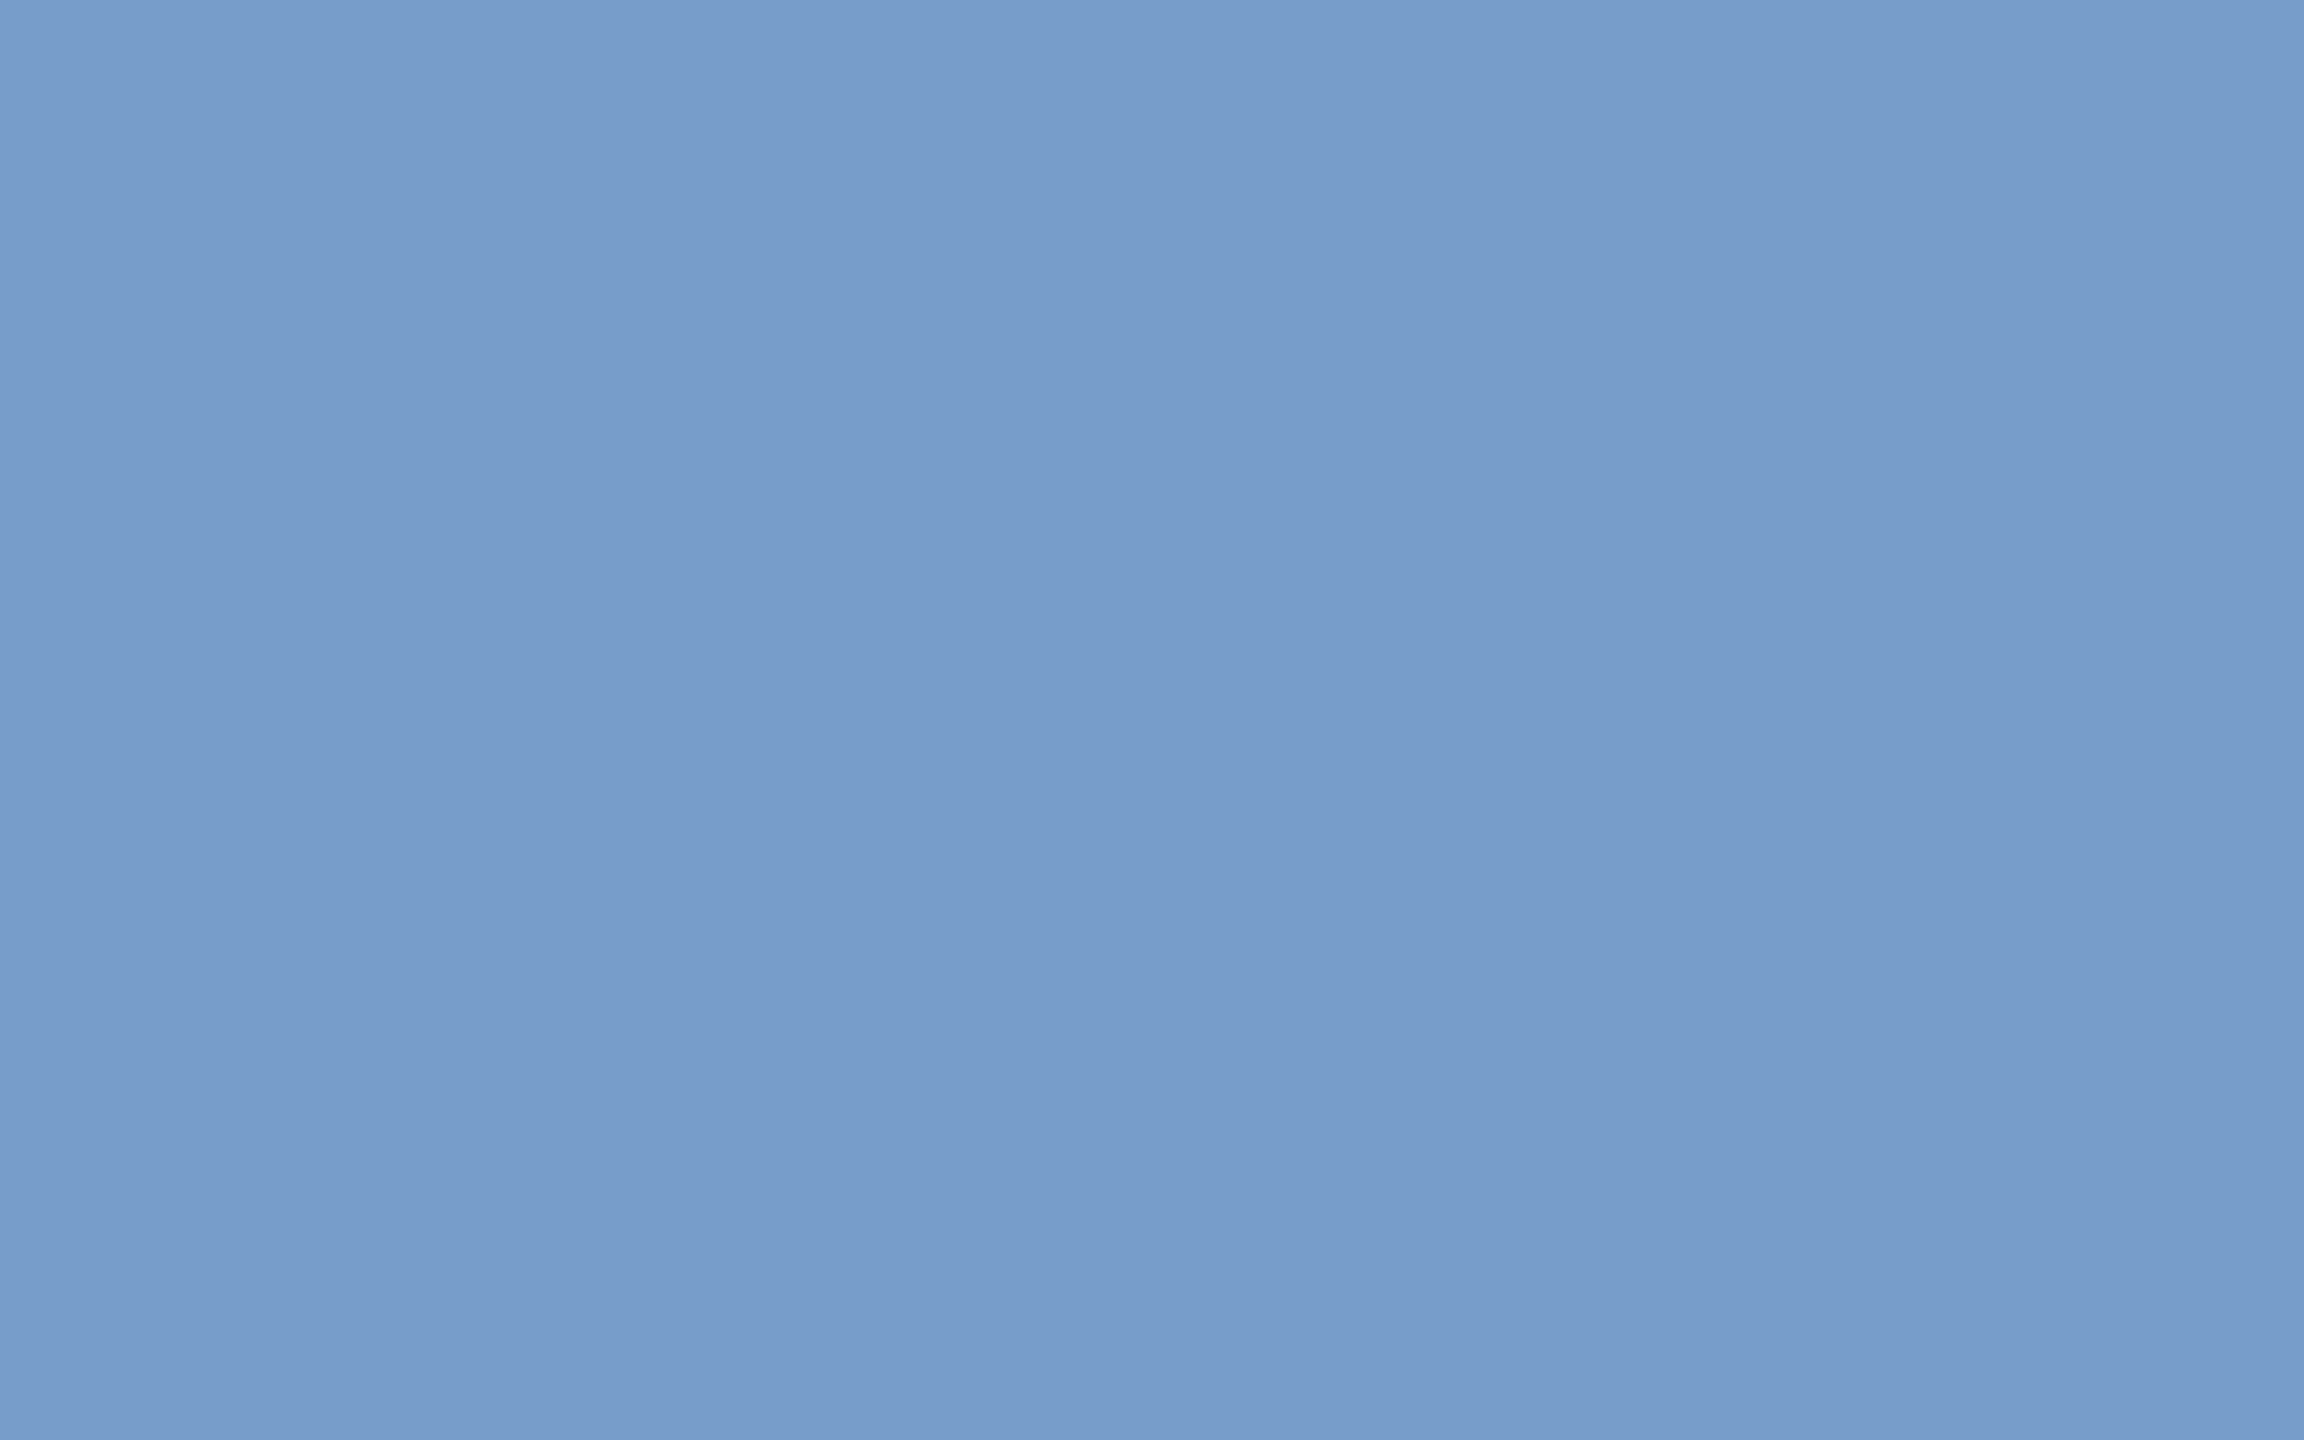 2304x1440 Dark Pastel Blue Solid Color Background